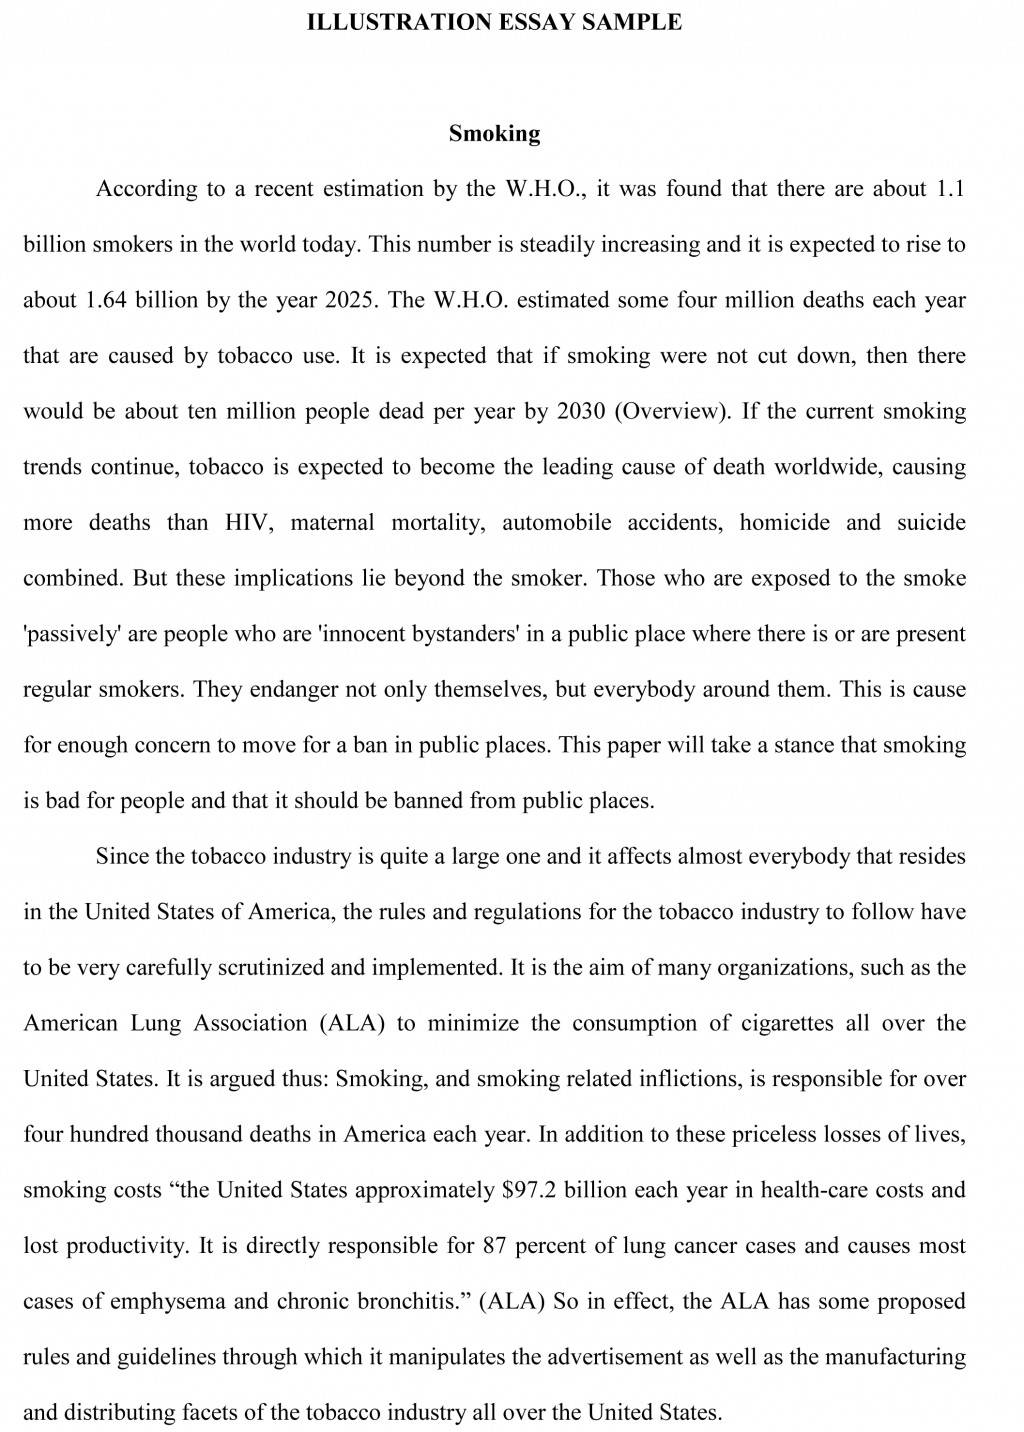 005 Illustration Essay Sample Anorexia Best Nervosa Conclusion Introduction Paper Outline Large